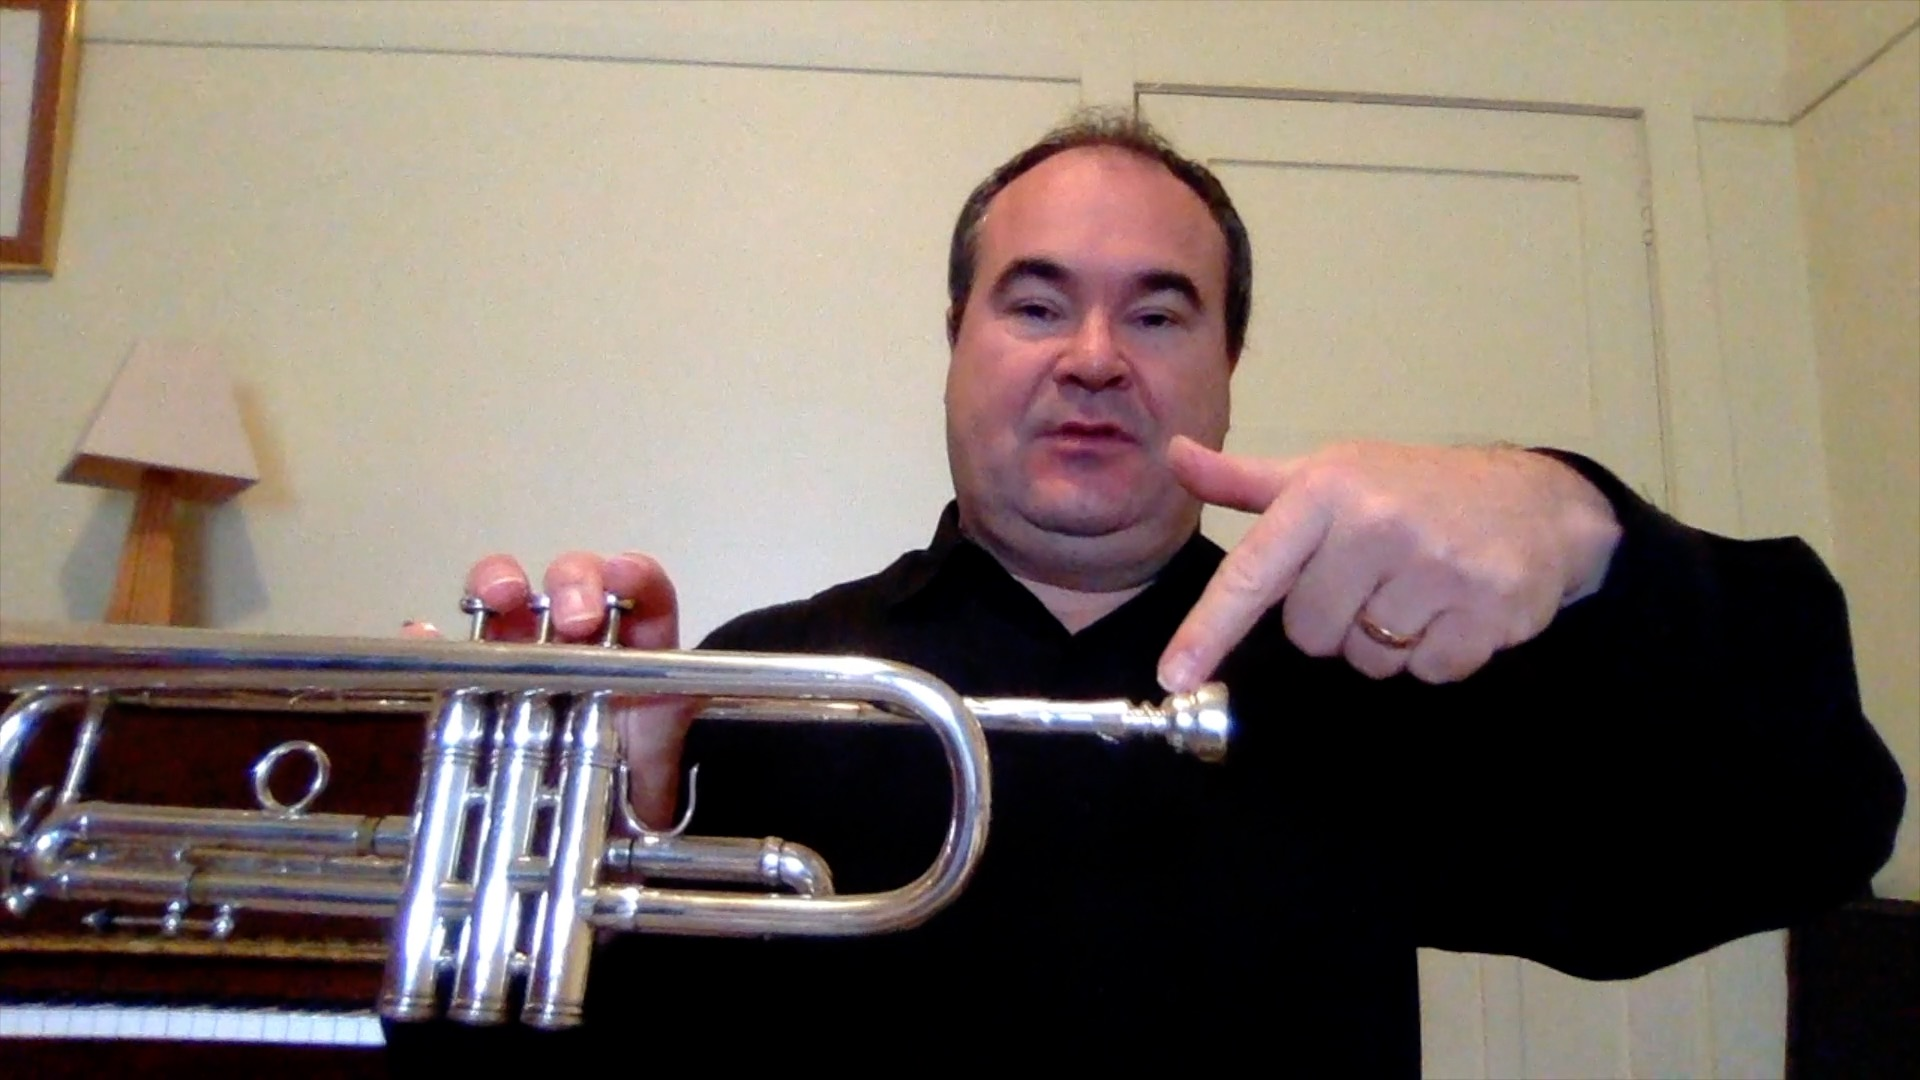 Trumpet – 2. The most important facet of trumpet playing. Air flow and support!